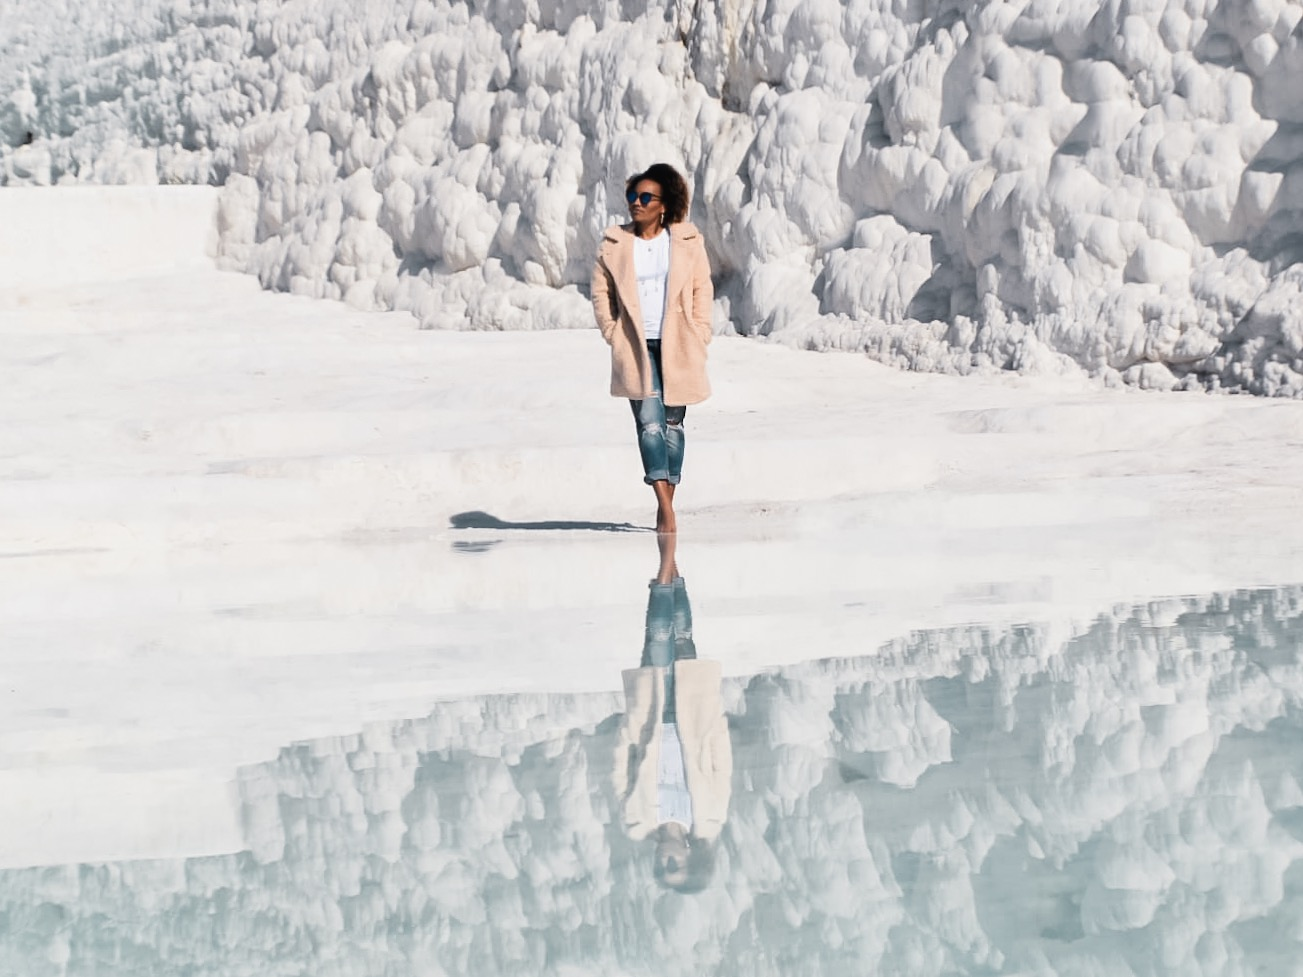 Illustrated by Sade - Photo of me and my reflection in the water standing in the hot spring water terrace at Pamukkale, Turkey.